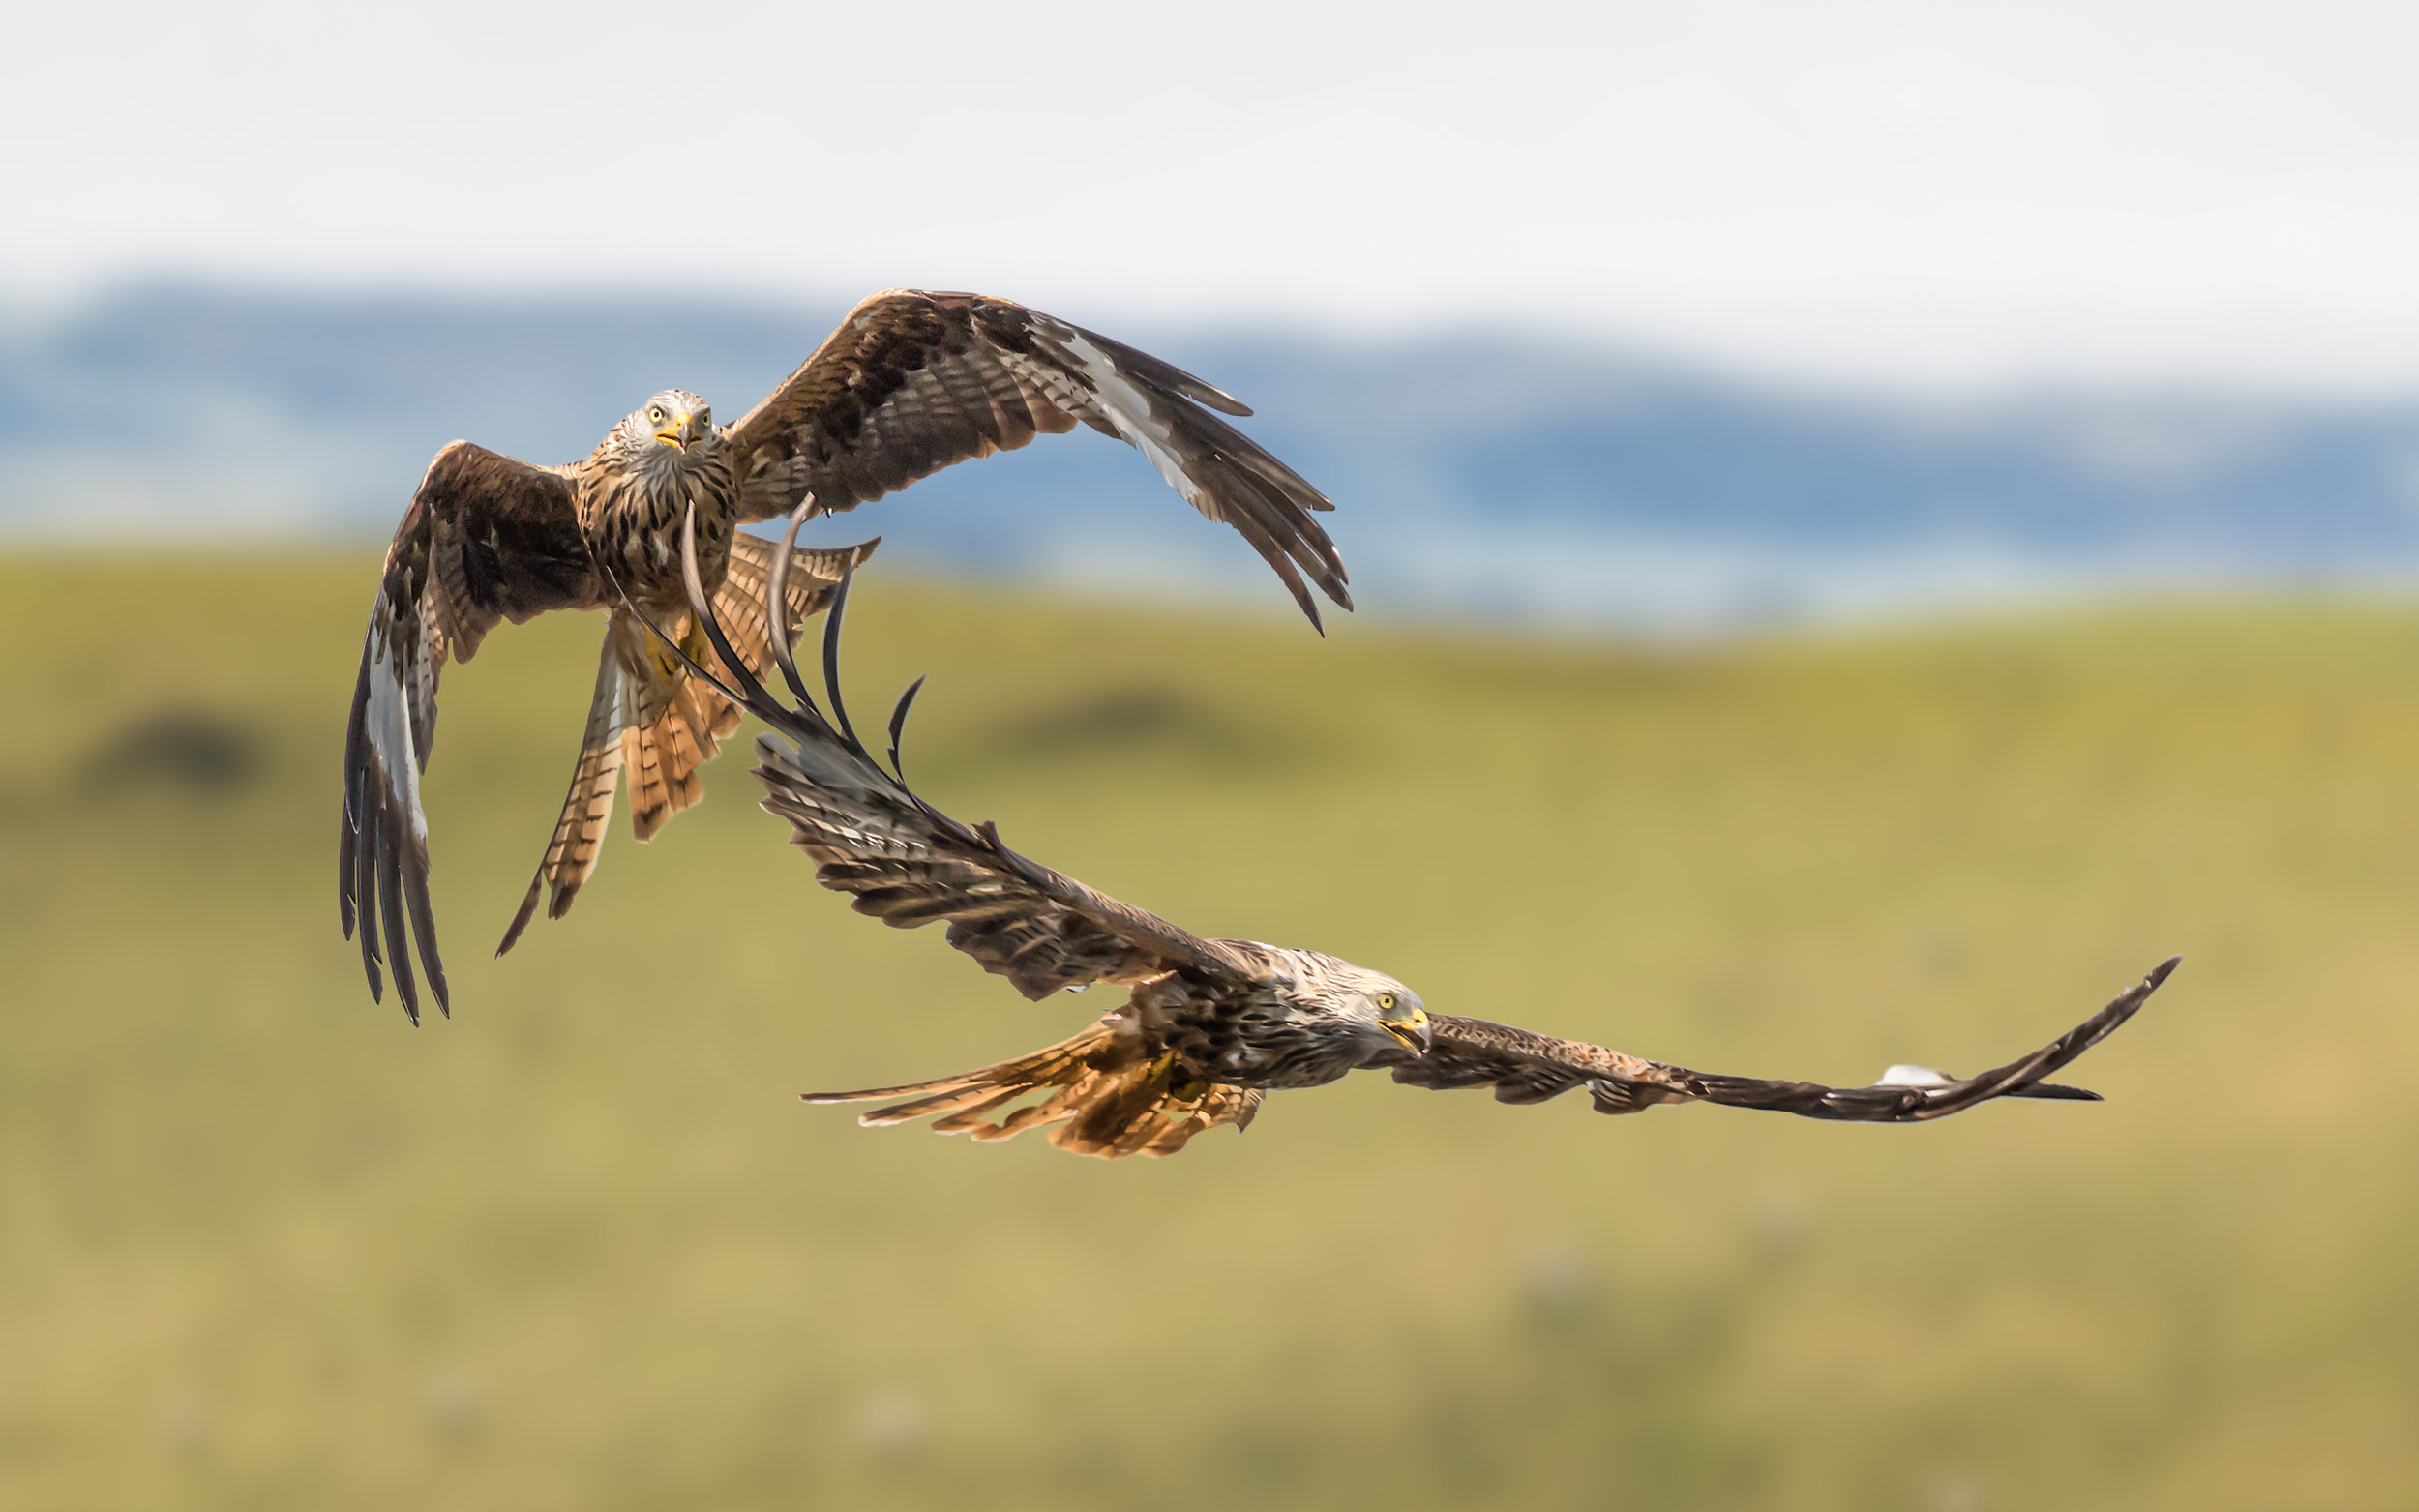 A pair of Red Kites #1